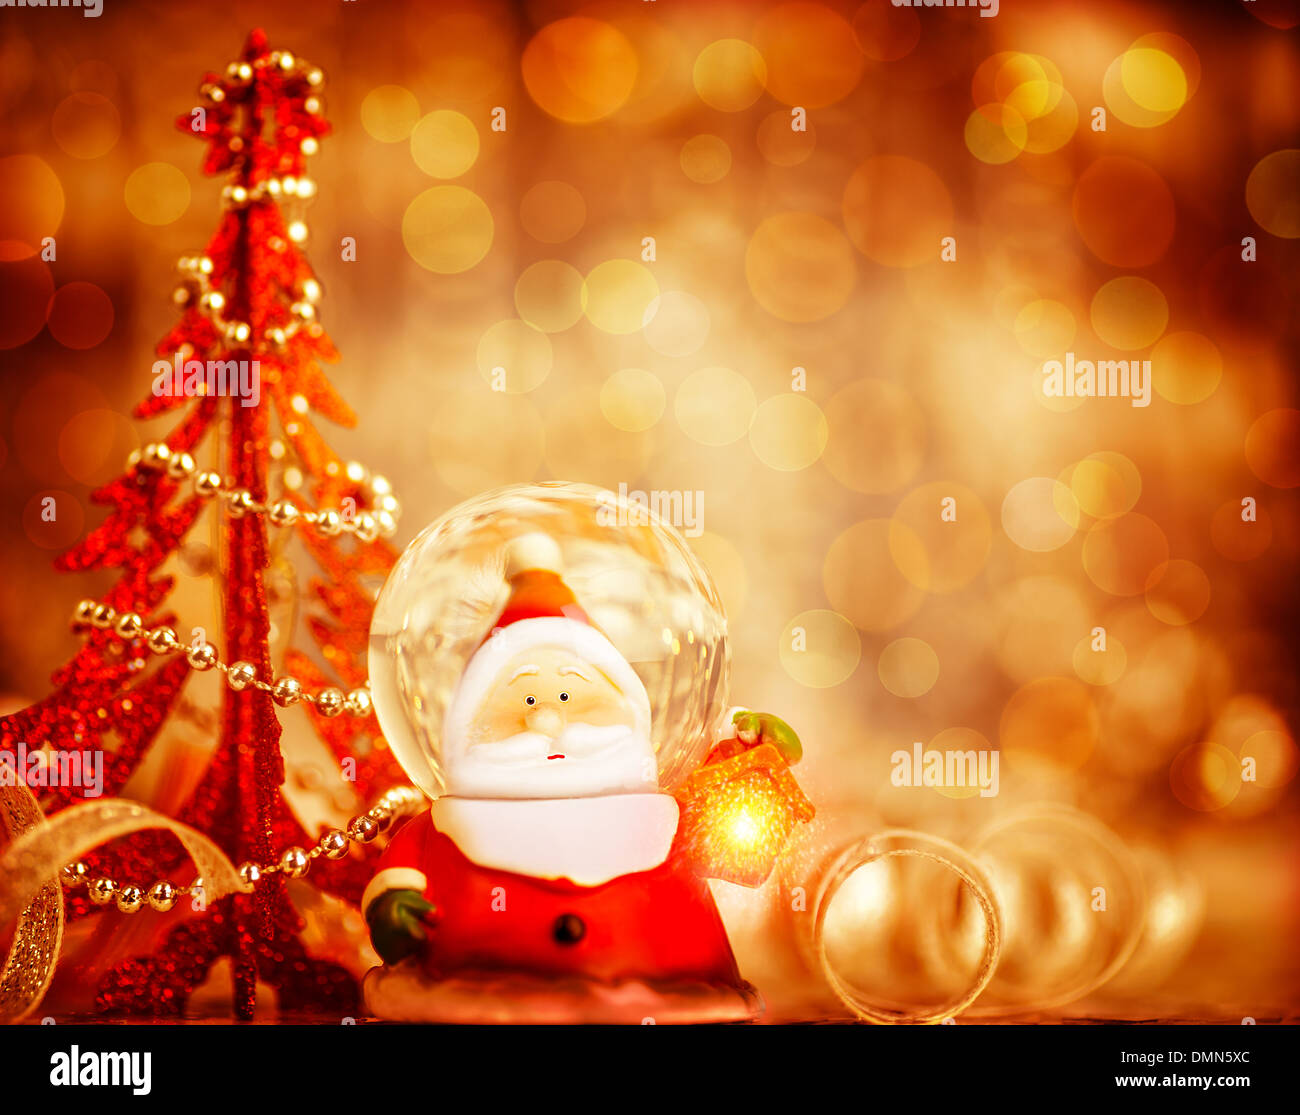 red christmas background with cute snow globe santa claus border over blur bokeh lights magic of christmas holidays - Santa Claus Red